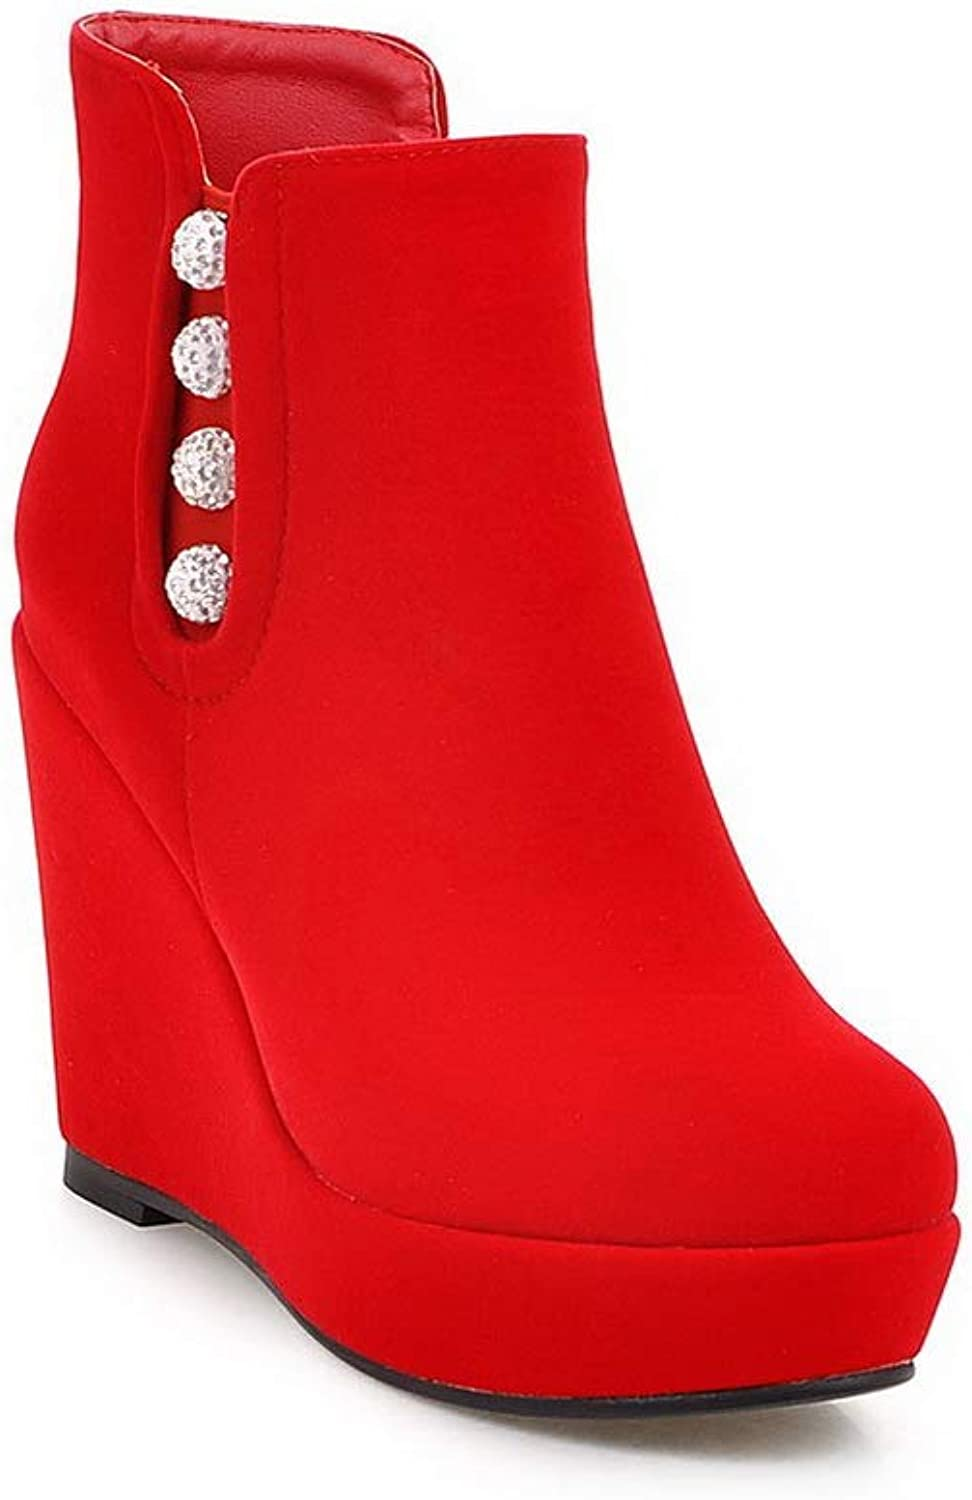 1TO9 Womens Wedges Platform Zipper Imitated Suede Boots MNS03259